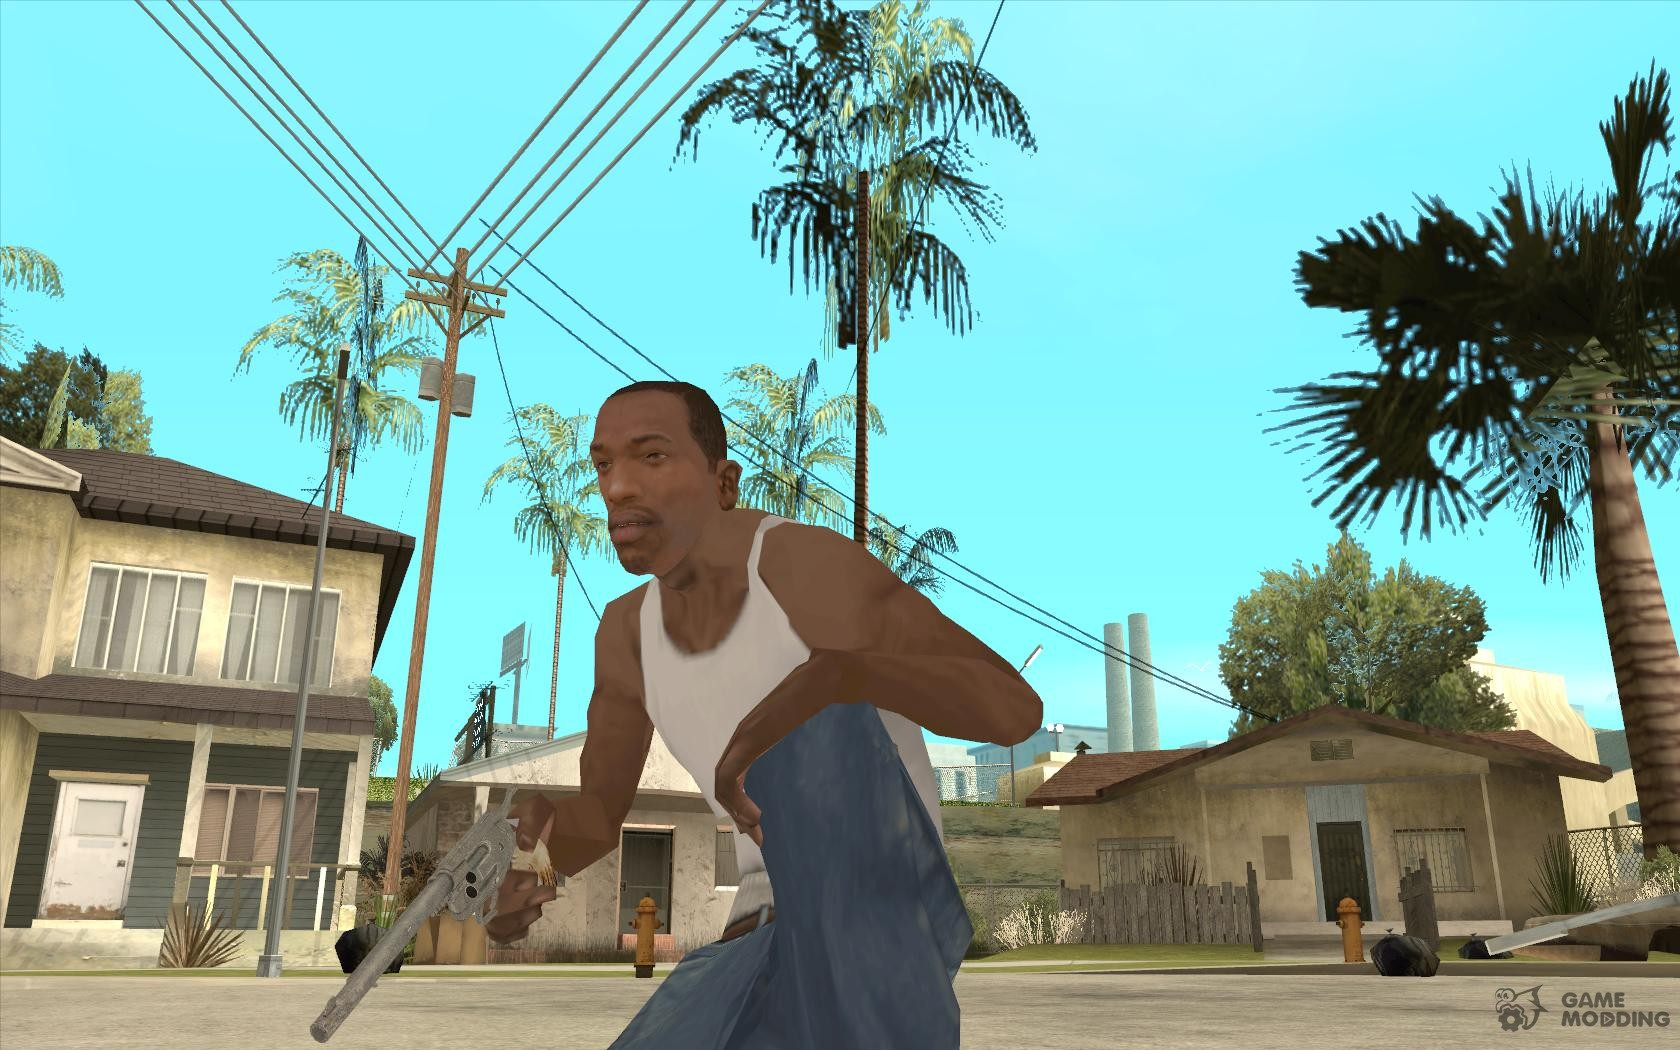 san andreas singles How to date a girl in grand theft auto: san andreas in grand theft auto: san andreas, the player can find and date a number of girls across the game map while some are necessary to complete missions, each girl comes with a variety of.